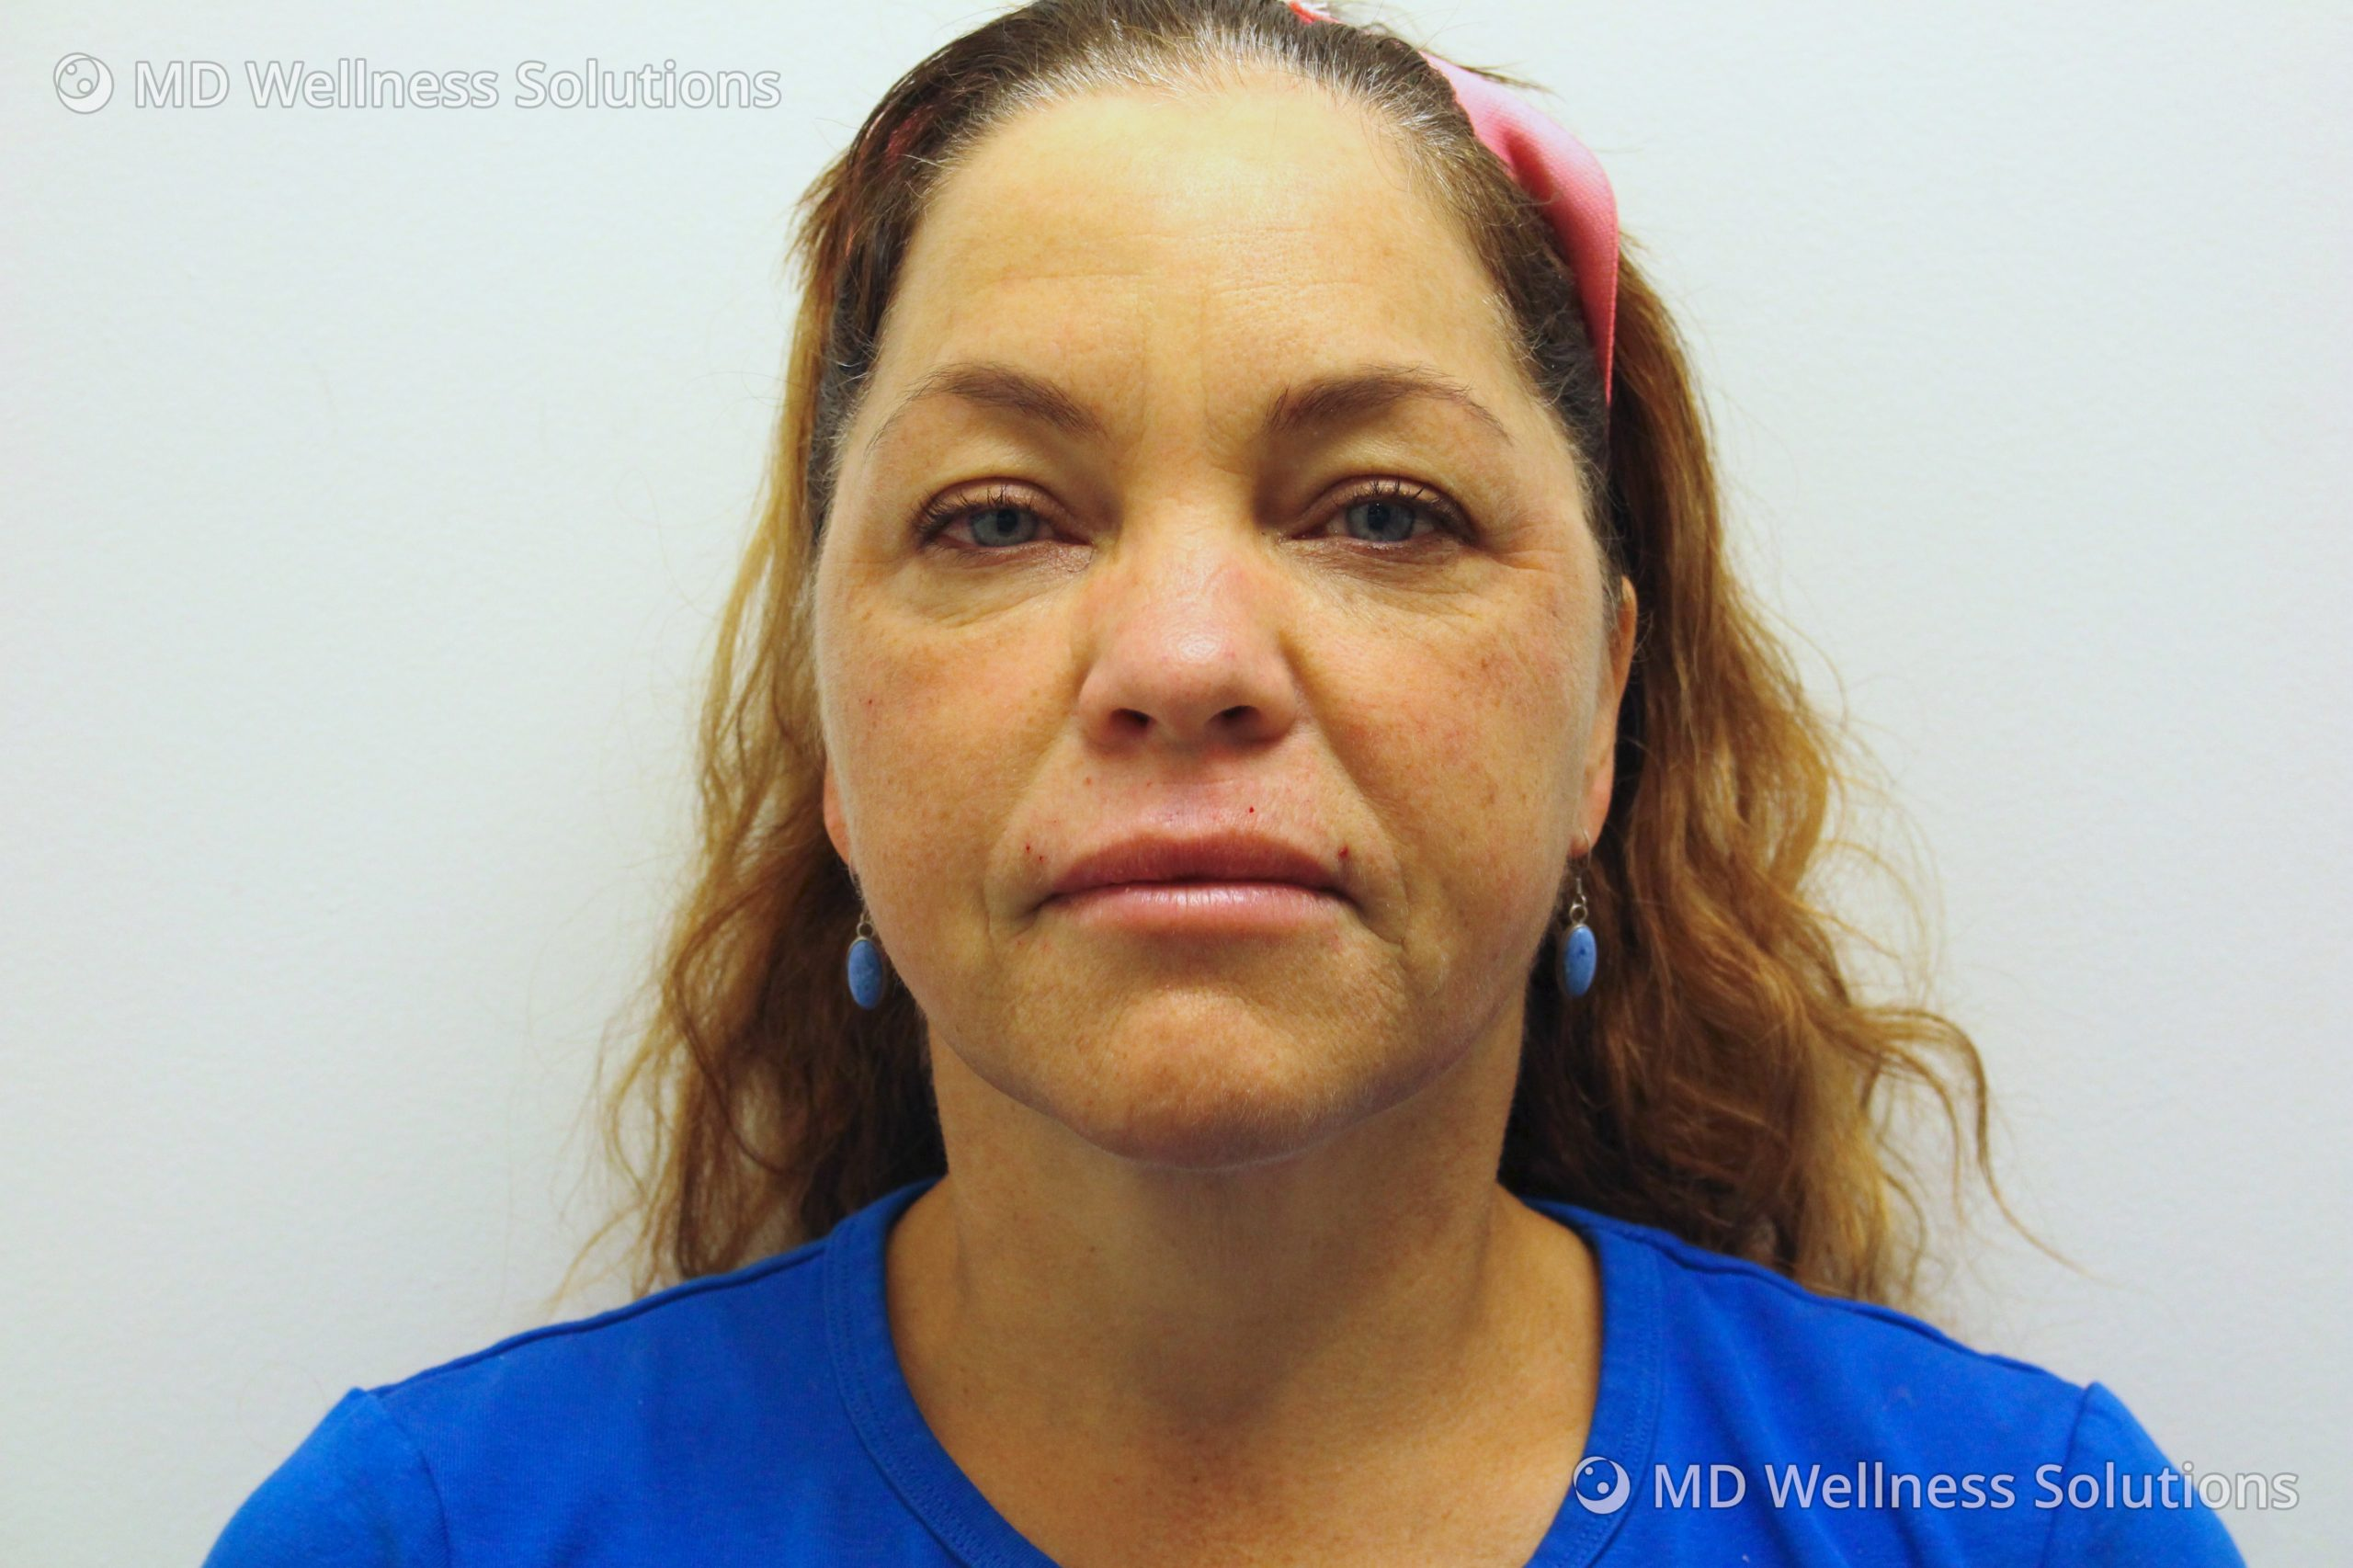 45-54 year old woman after dermal filler treatment